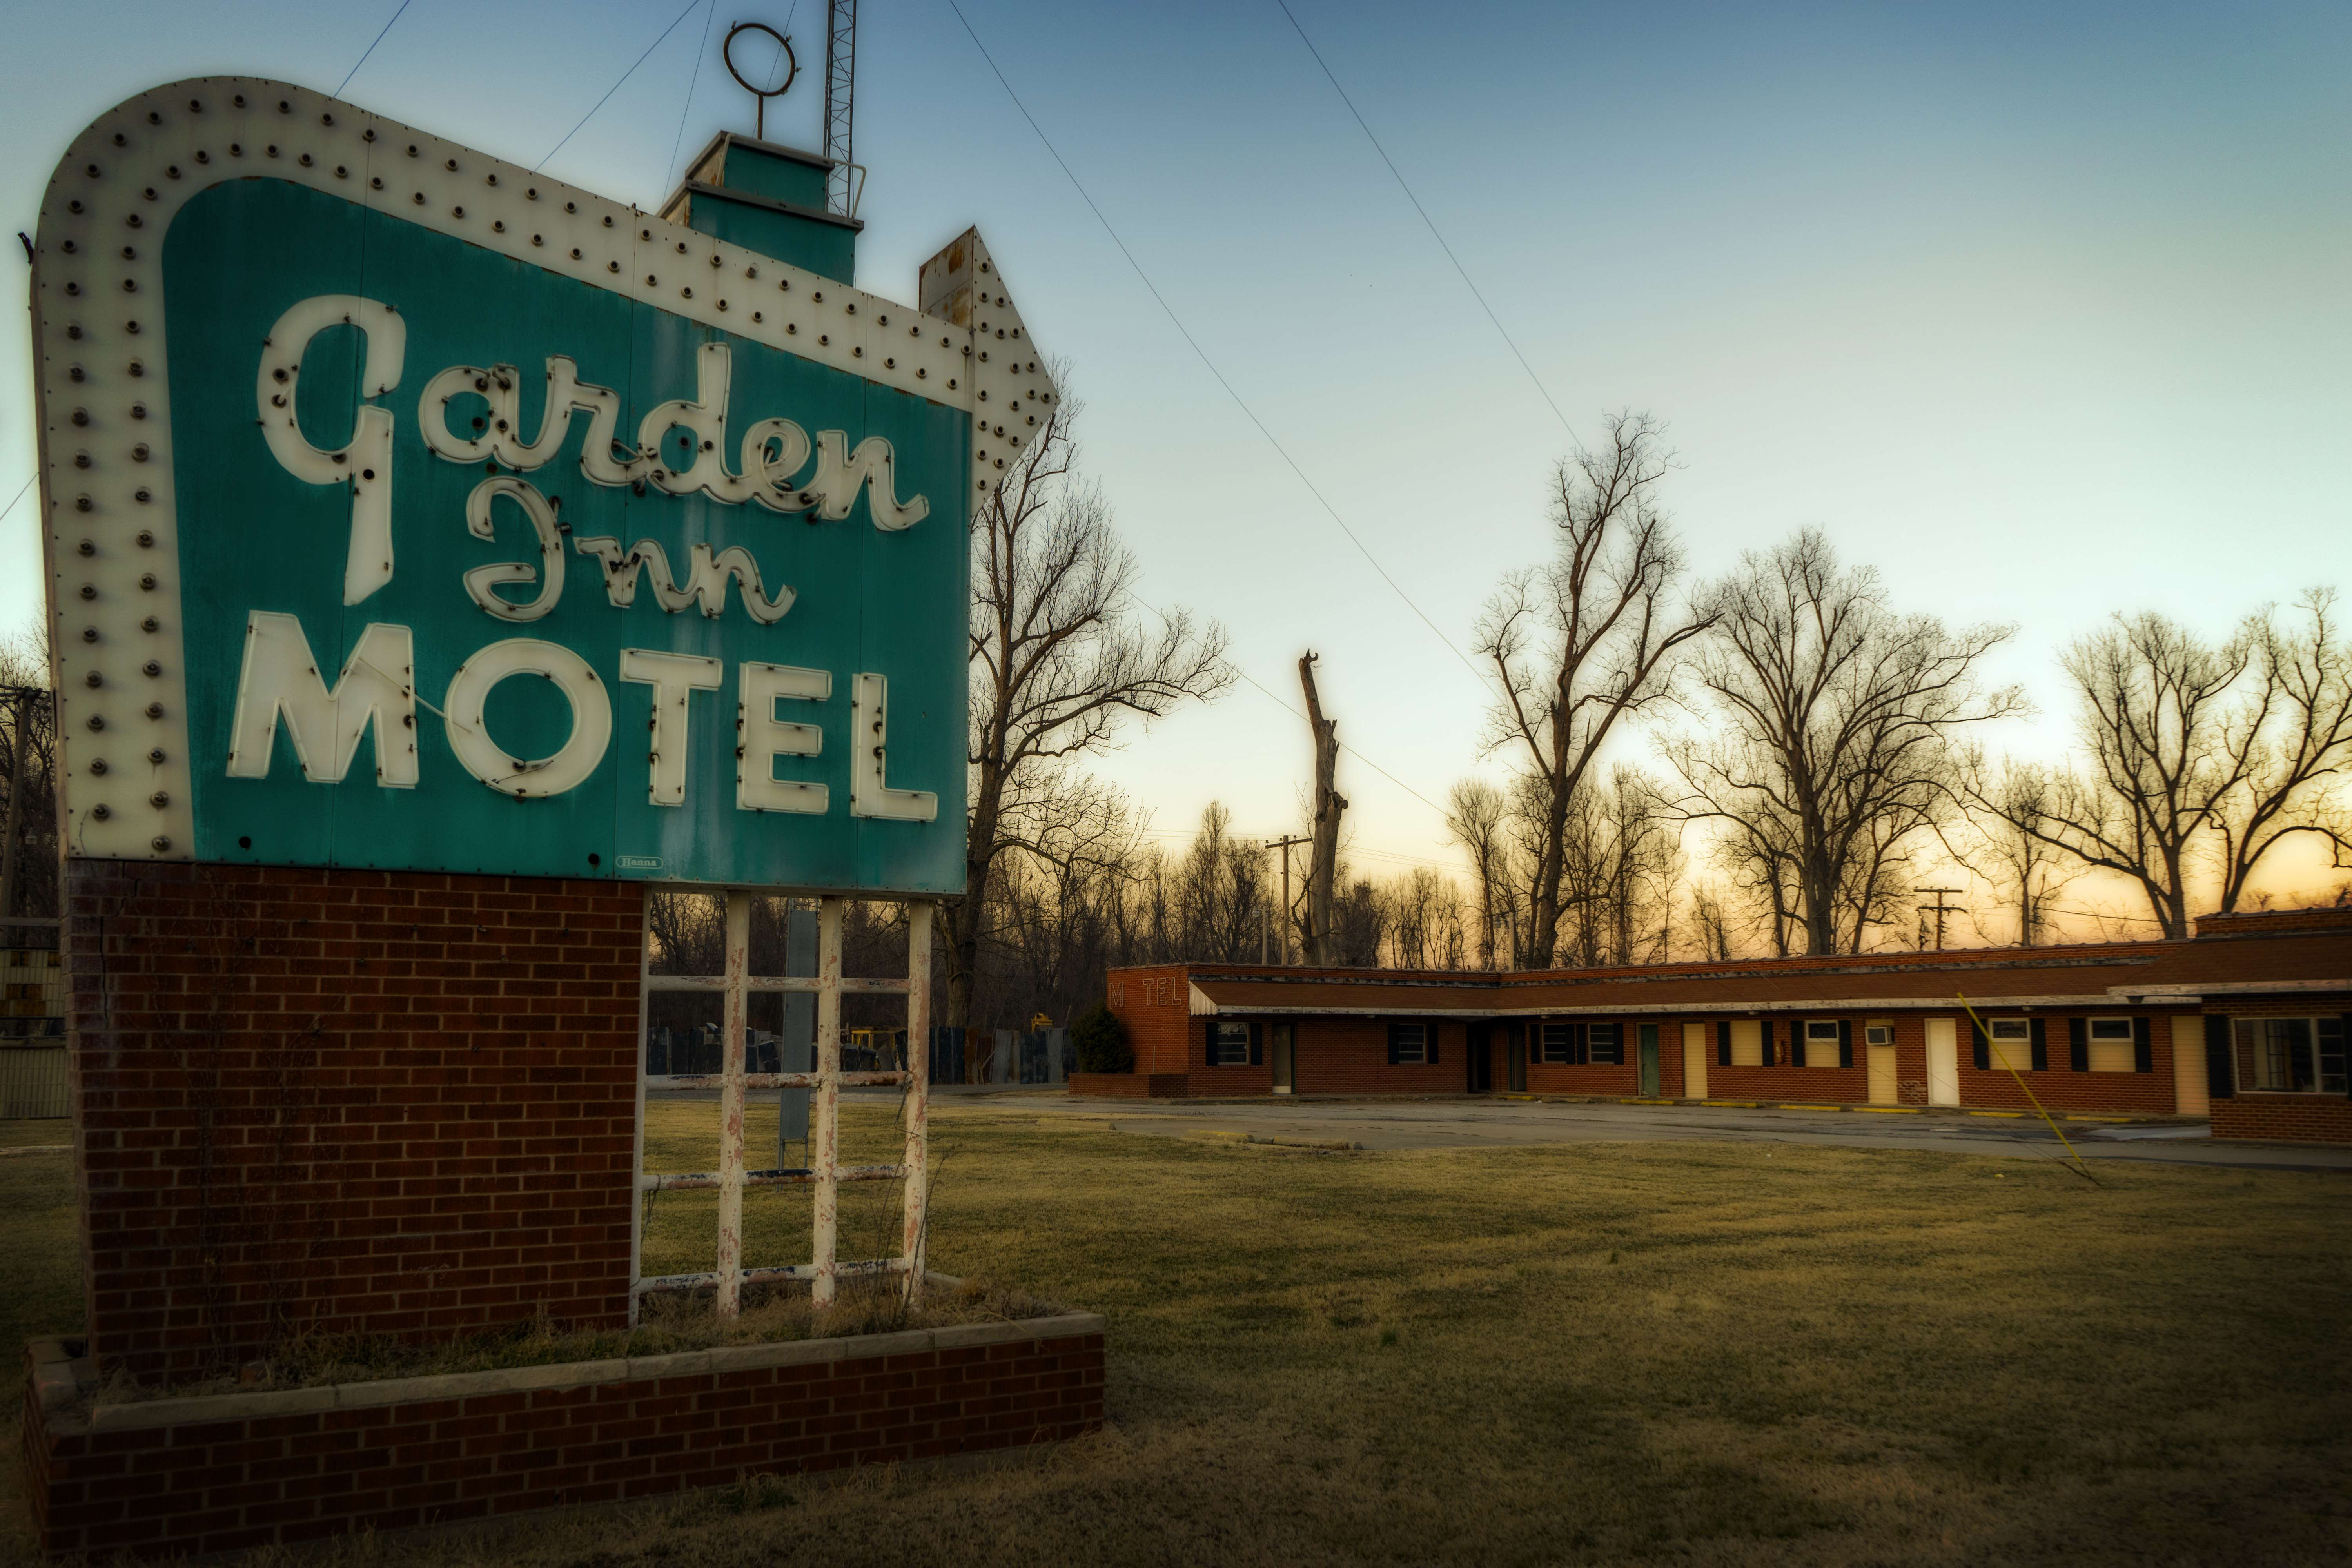 Old school motel. Very old school.